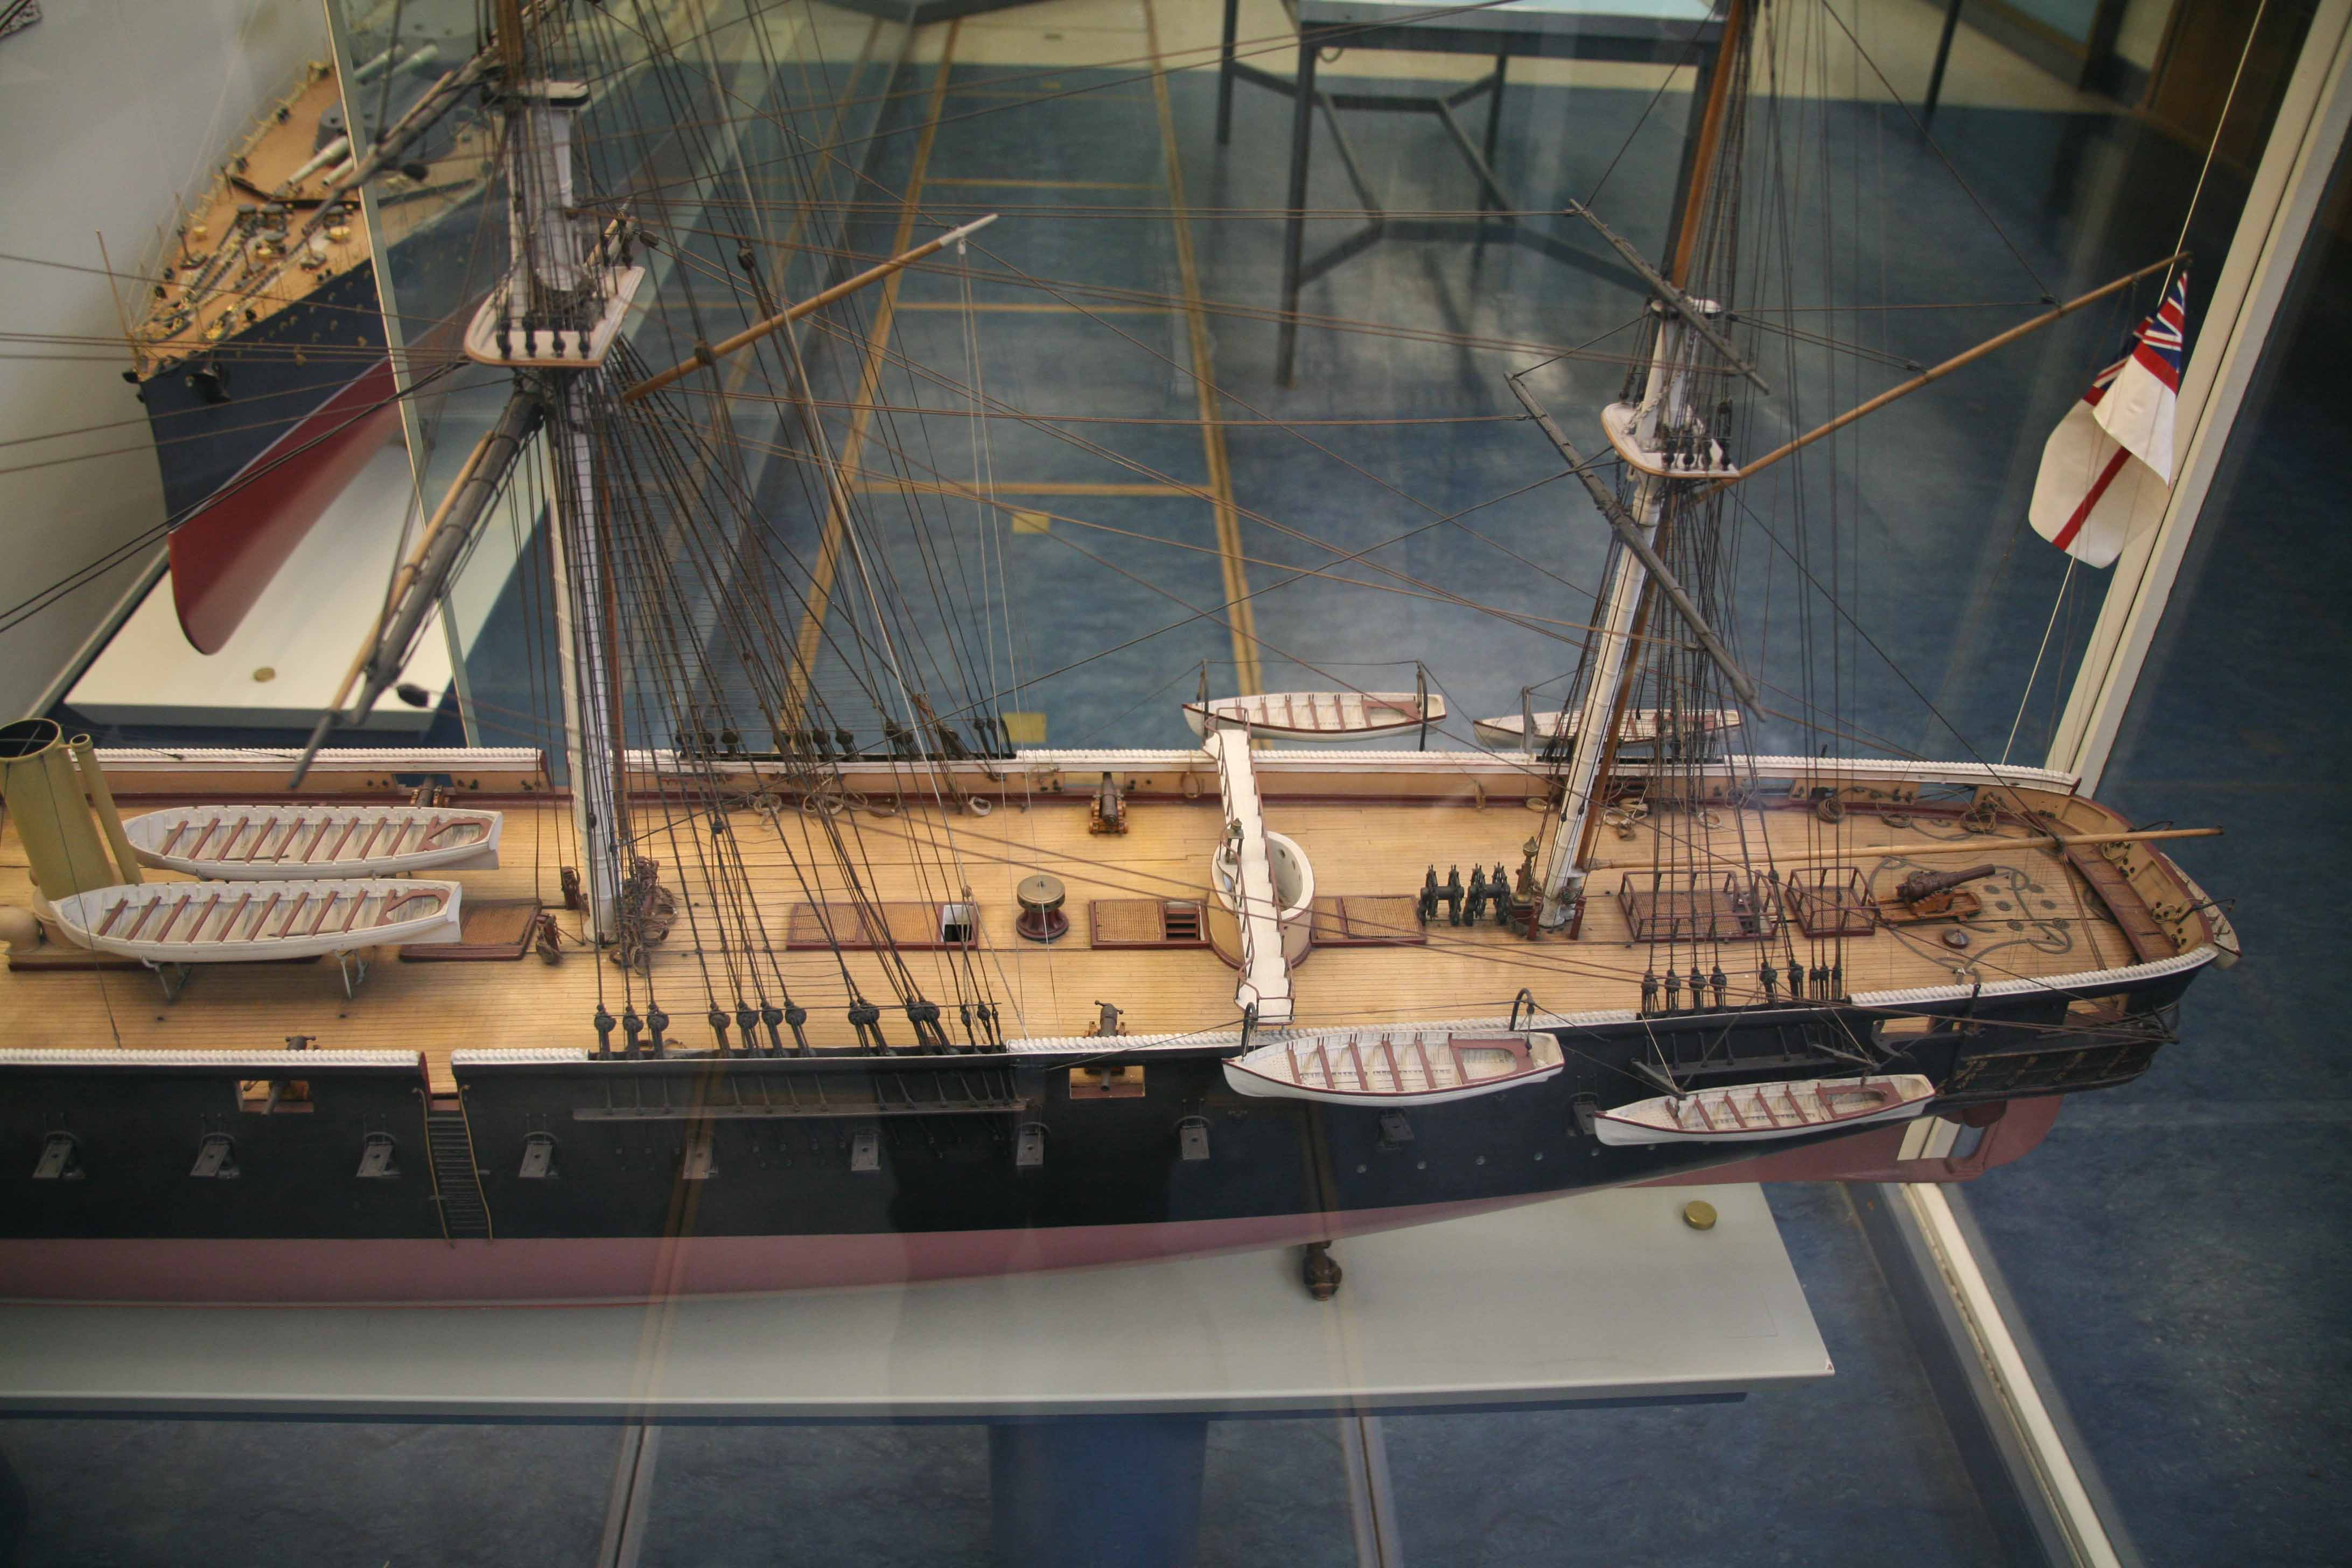 Photos of model of HMS Warrior, Science Museum, London